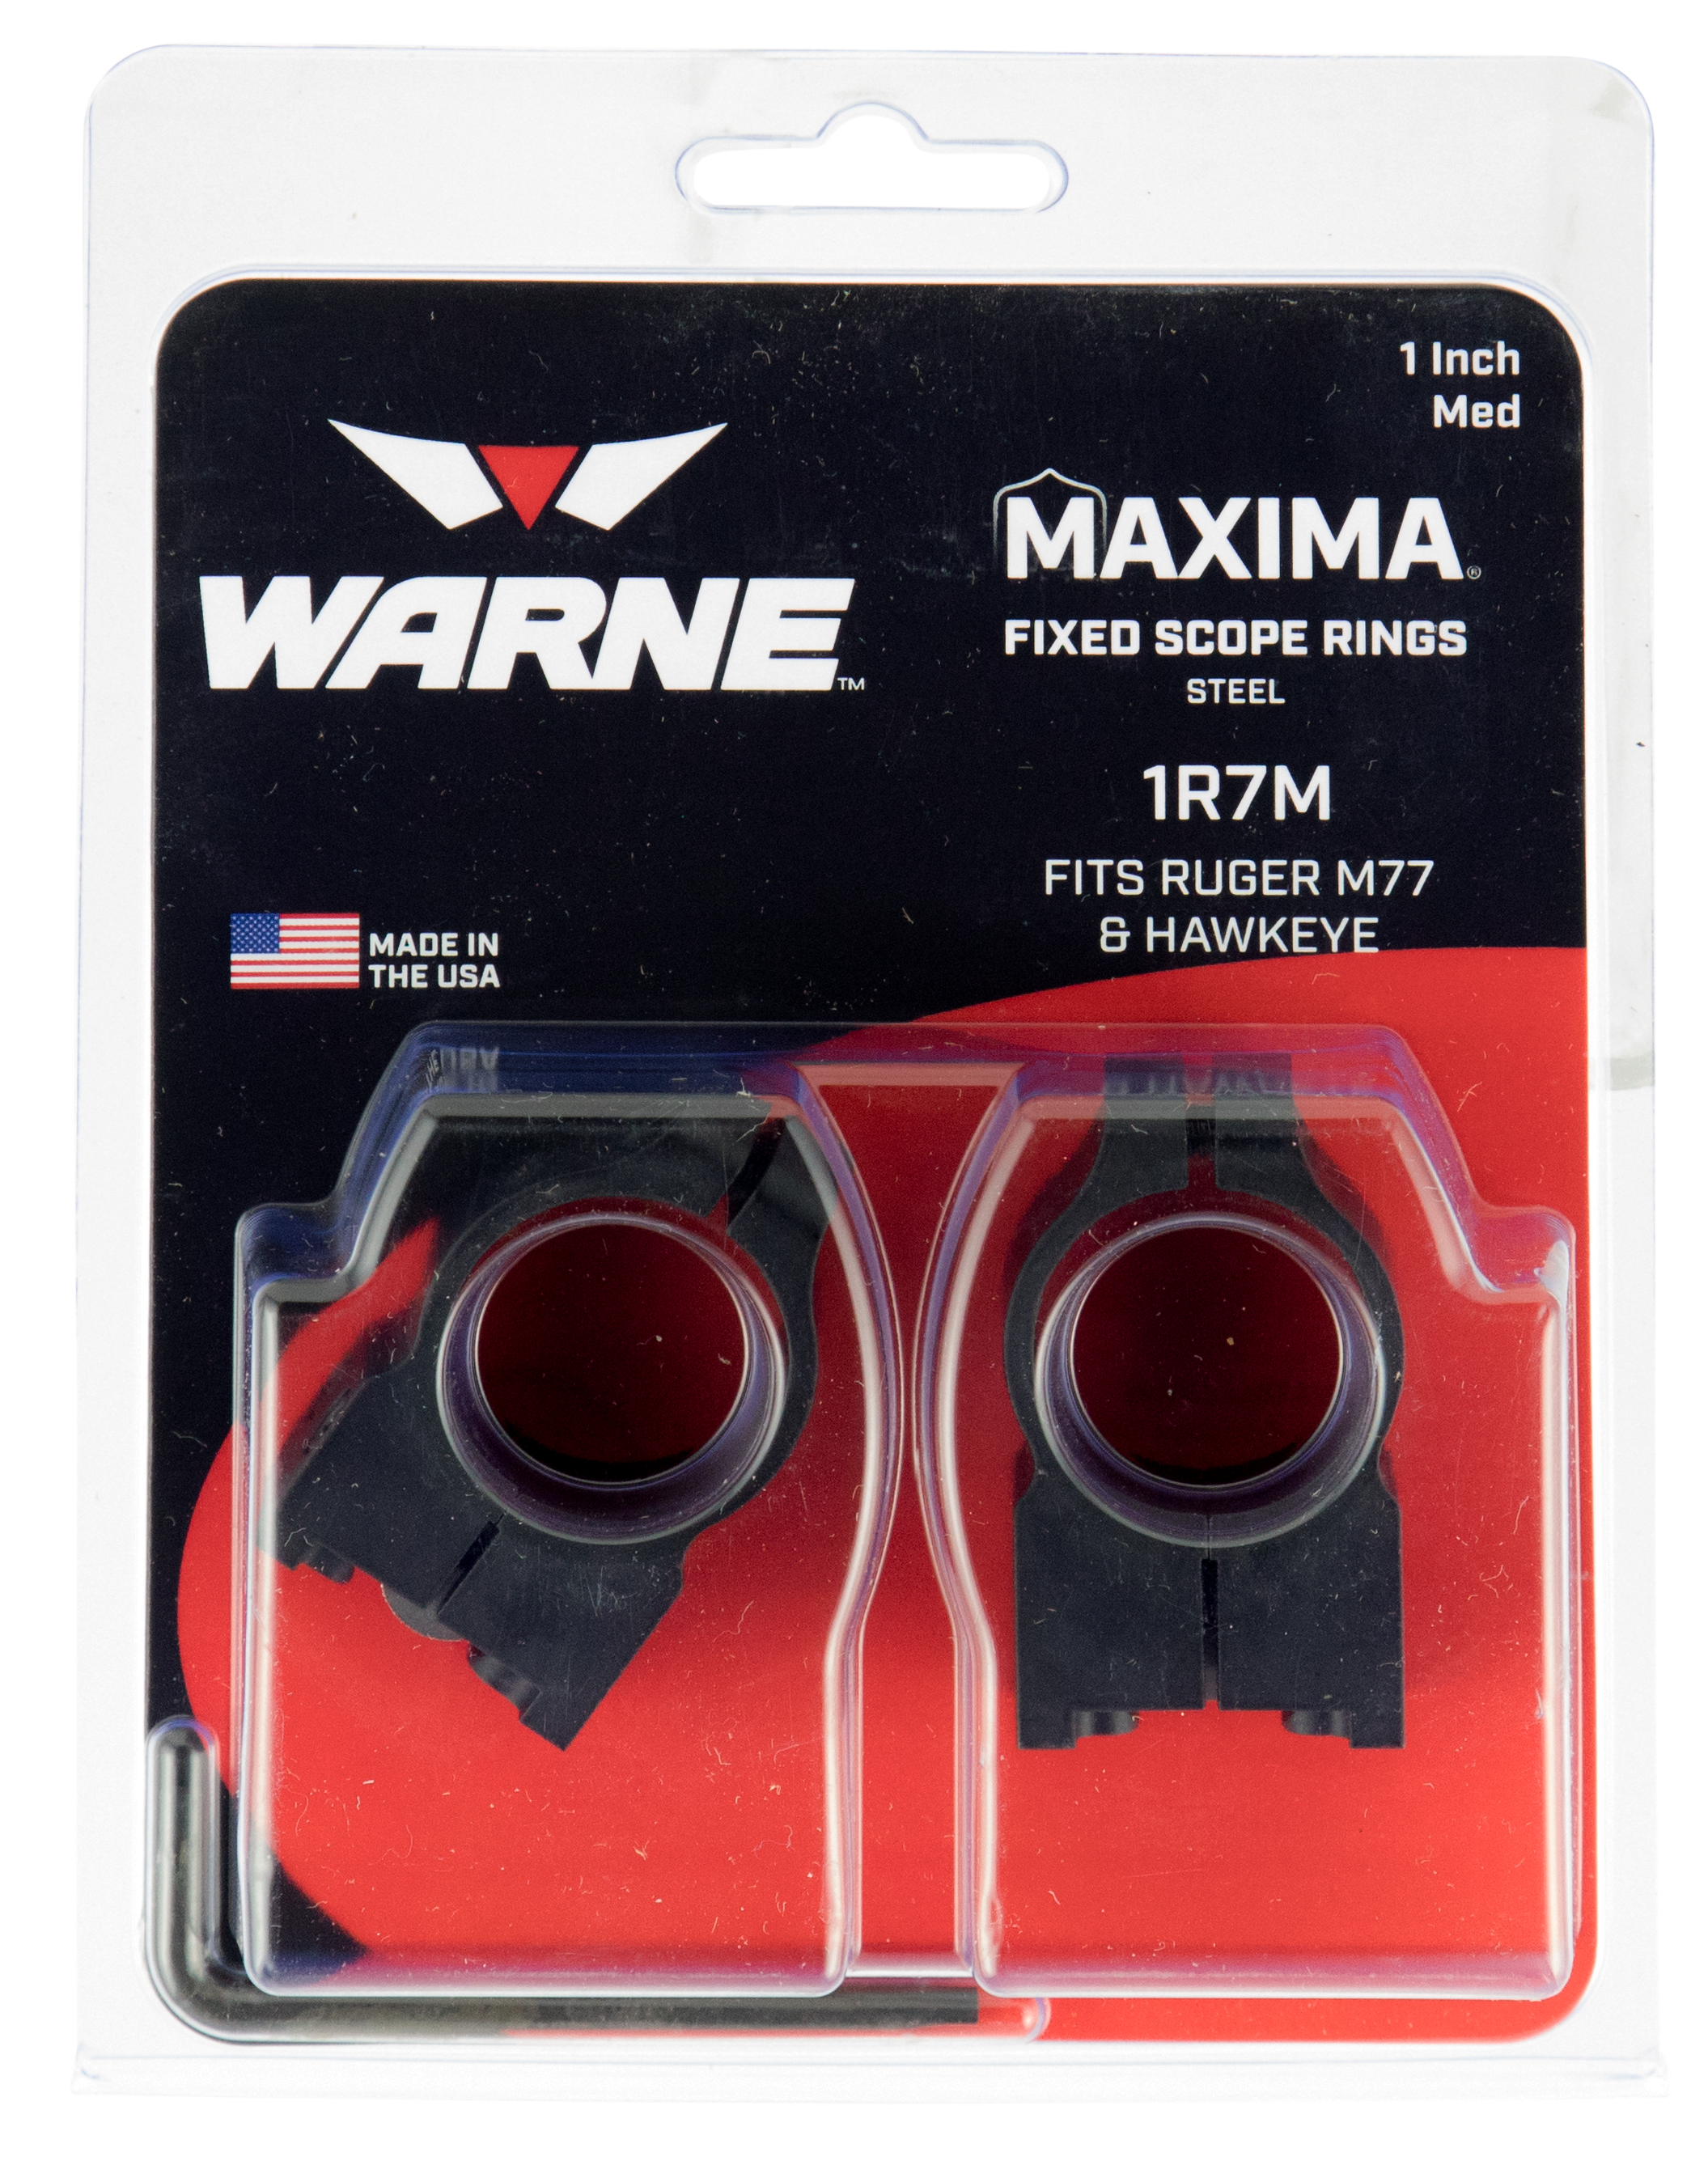 Warne 1TM Tikka Ring Set 1